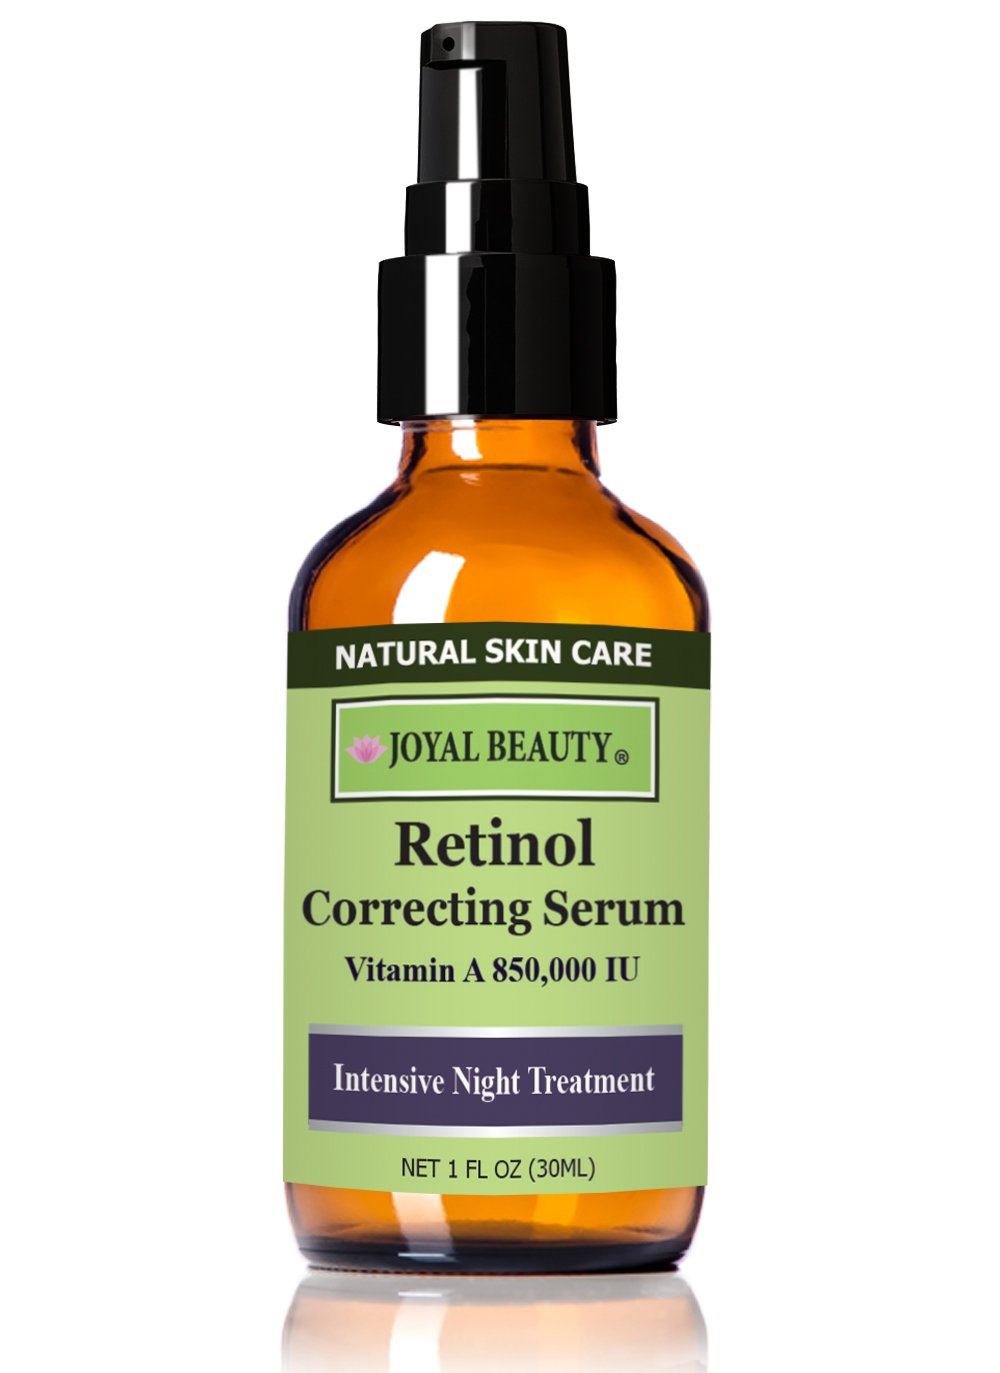 Joyal Beauty Organic Retinol Serum for Face Skin Eyes. Best for Anti-Aging Firming Fine Lines Wrinkles Acne Pores. Advanced Night Serum for Men and Women. Effective as Retin-a and Gentle. 1.0%. 1 oz.